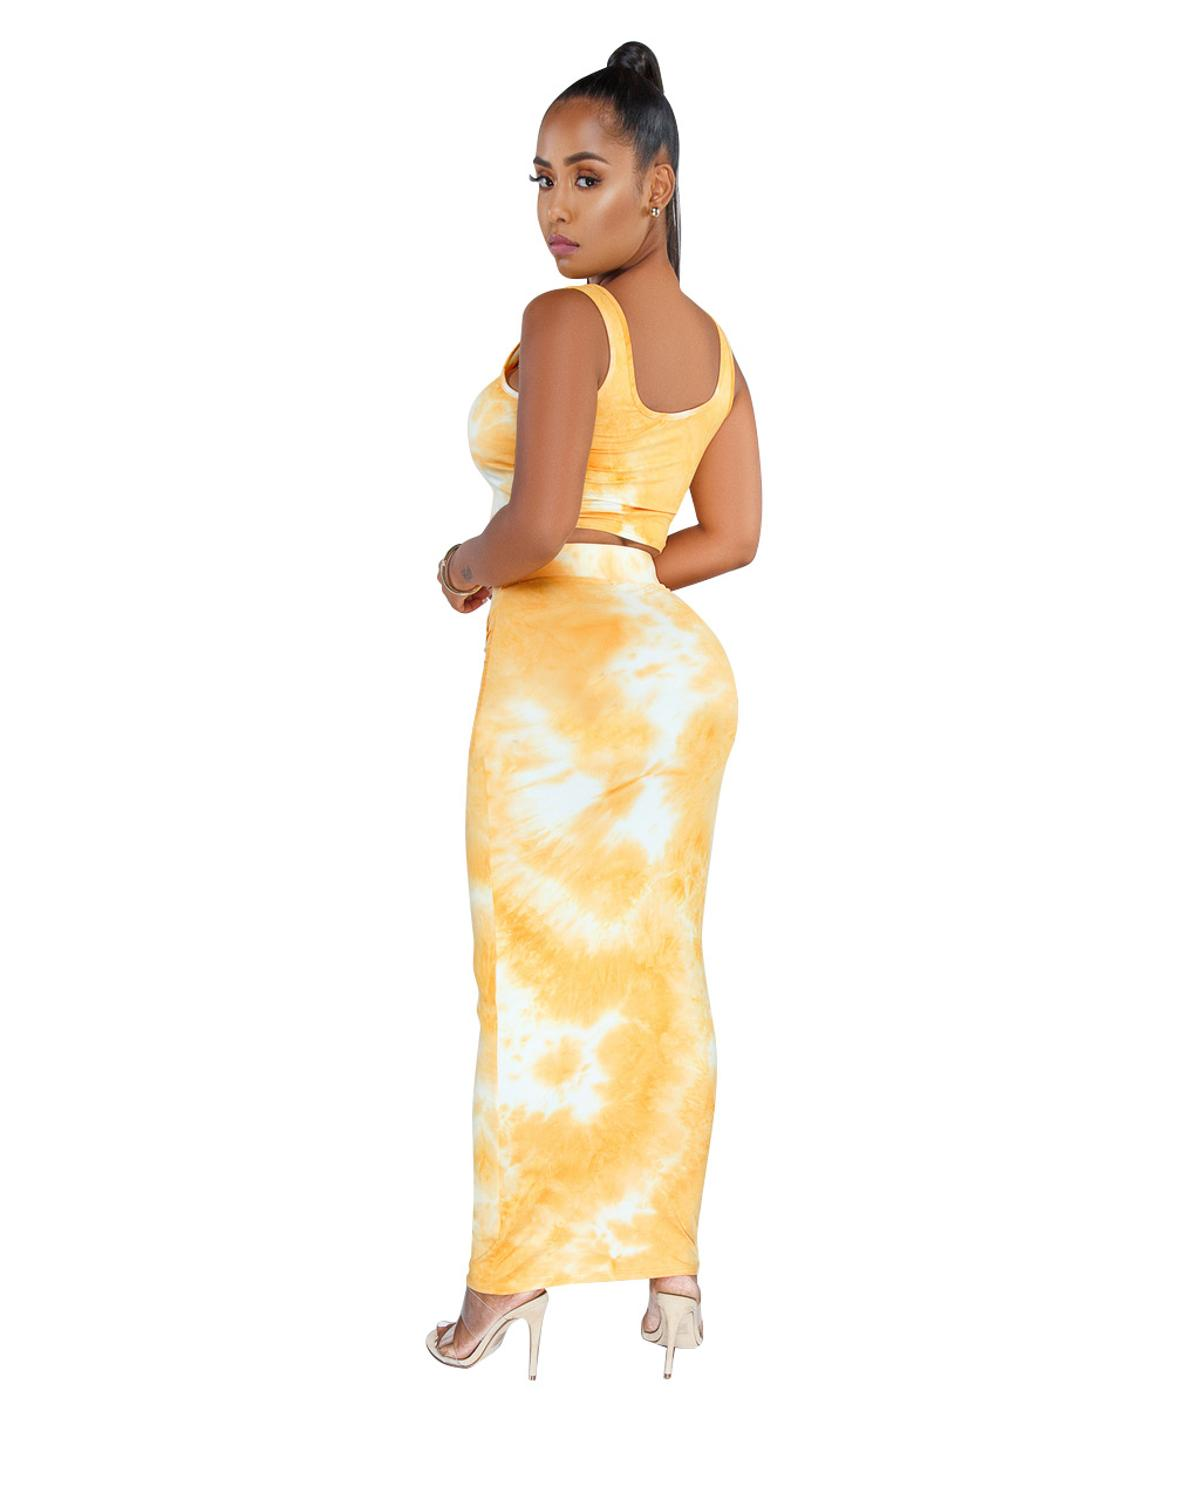 Women Sexy 2 Piece Set Tie Dye Print Skirt Set Sleeveless Crop Top and Long Pencil Skirt Lace Up Wrap Elegant Party Club Outfit in Women 39 s Sets from Women 39 s Clothing